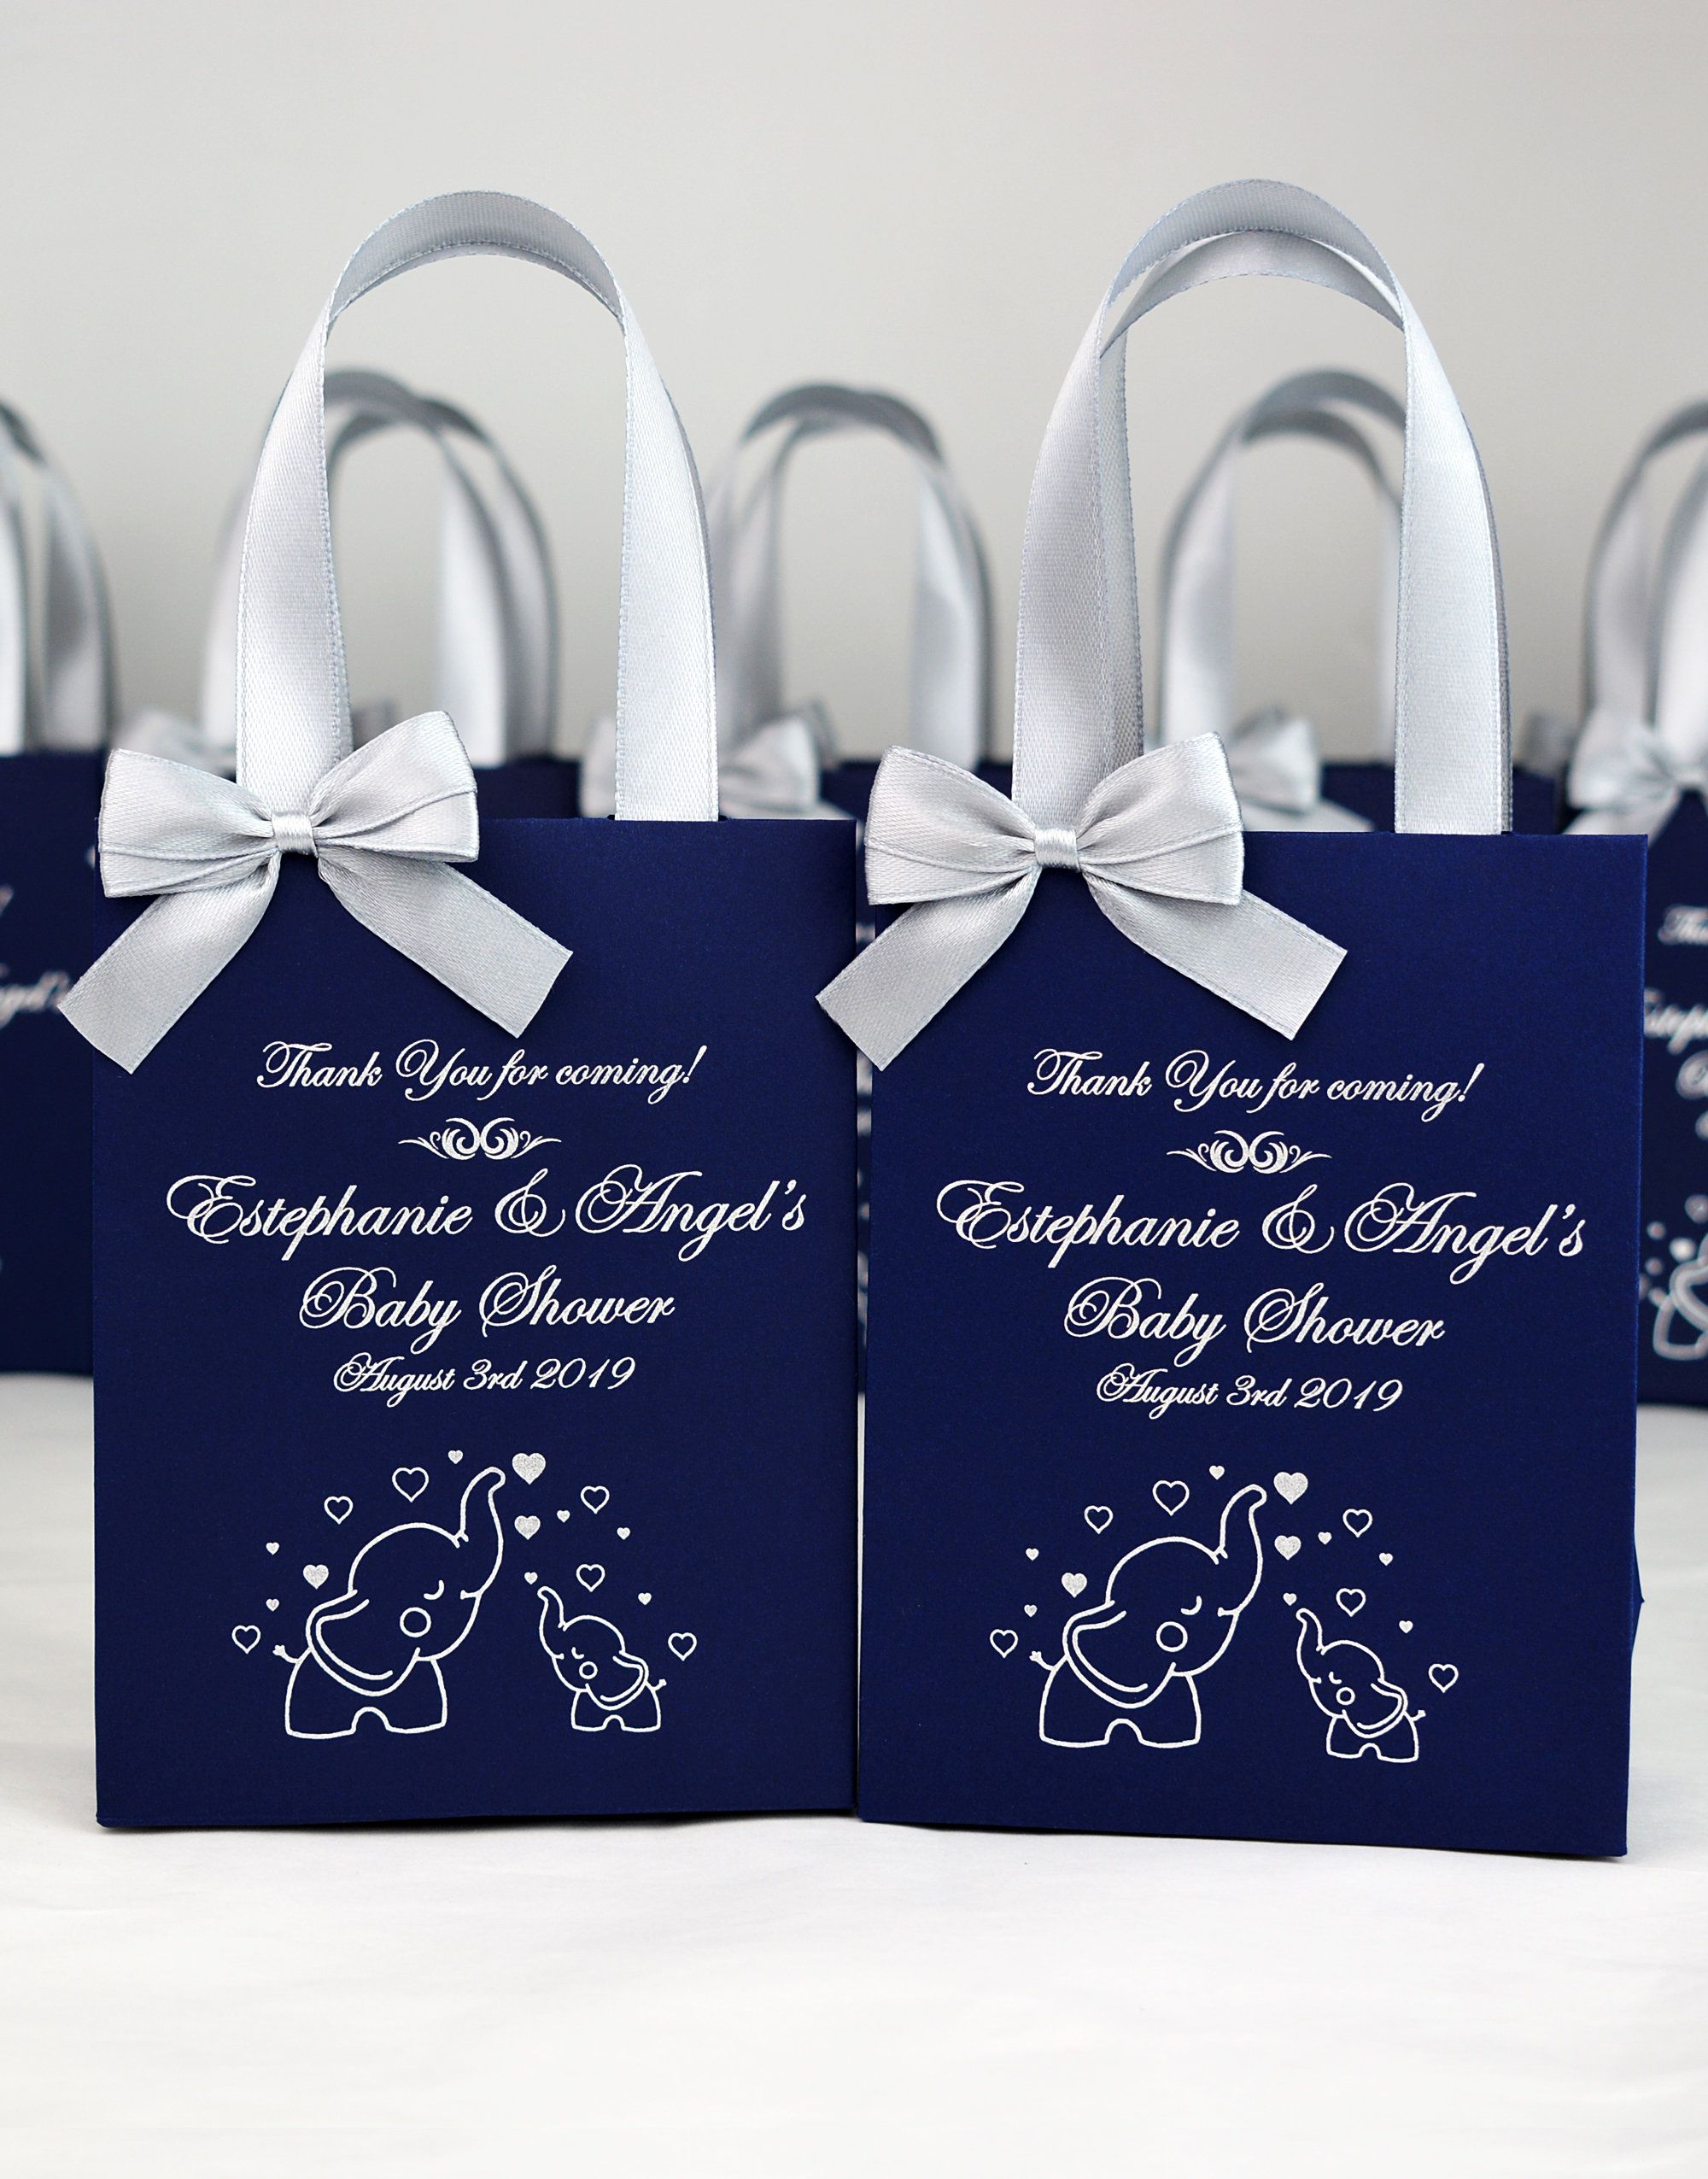 25 elephant baby shower gift bags with satin ribbon